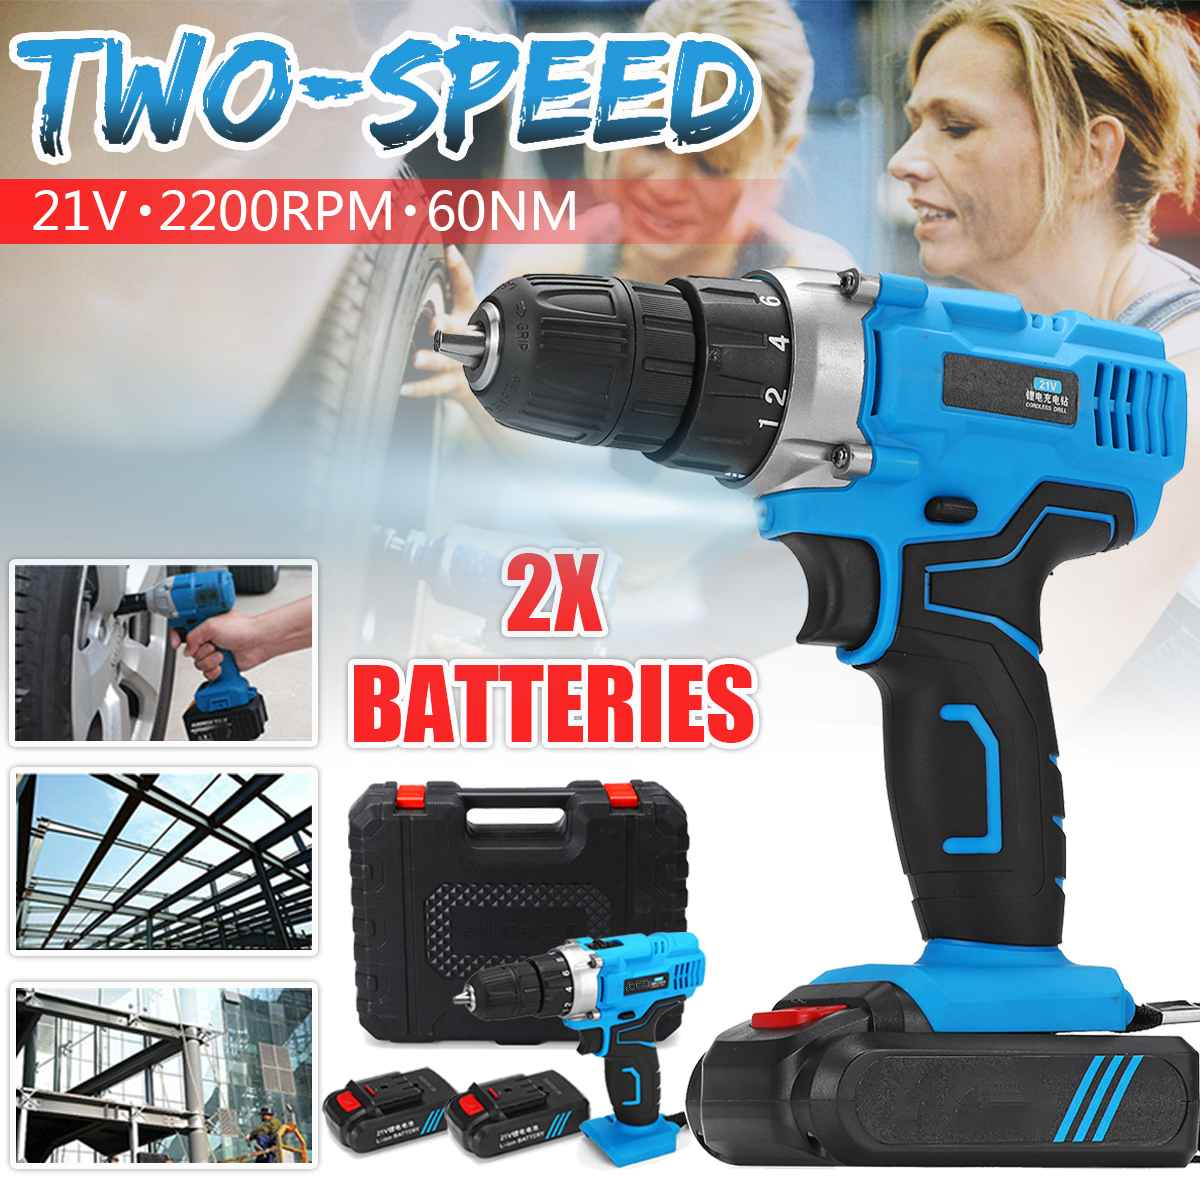 21V Double Speed 2200RPM Electric Screwdriver Kit 220V 2X 6500mAh Li-Ion Battery Rechargable Electric Cordless Drill Power Tool